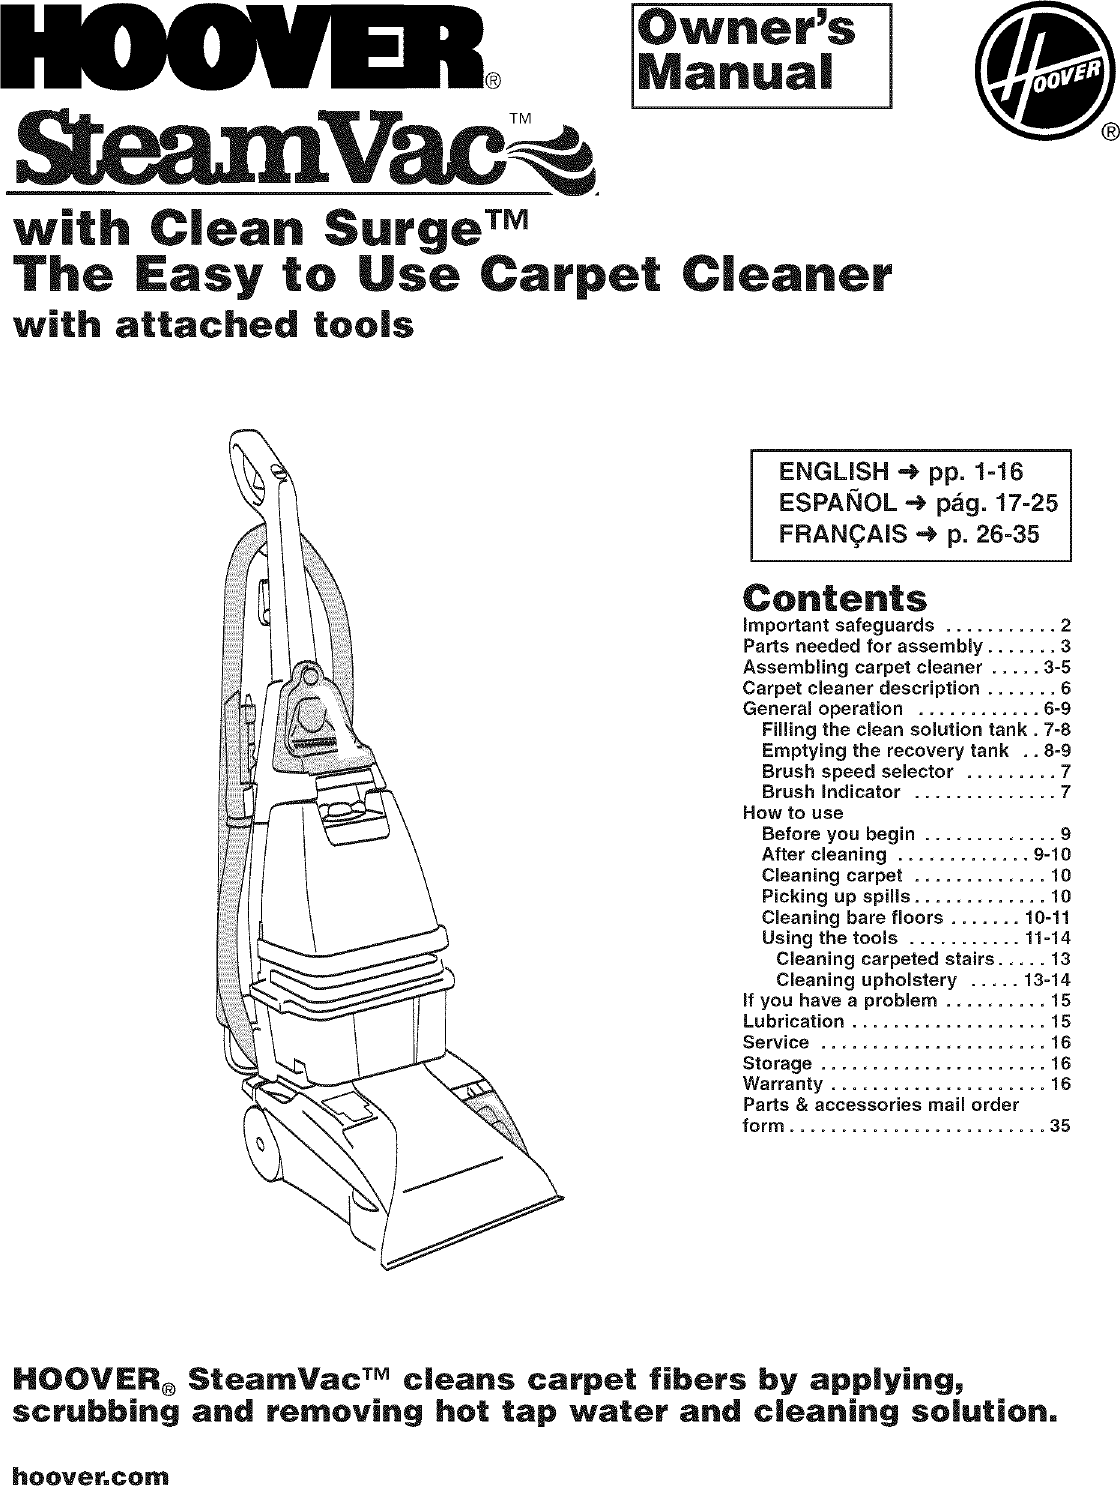 Hoover F5905 900 User Manual UPRIGHT EXTRACTOR Manuals And